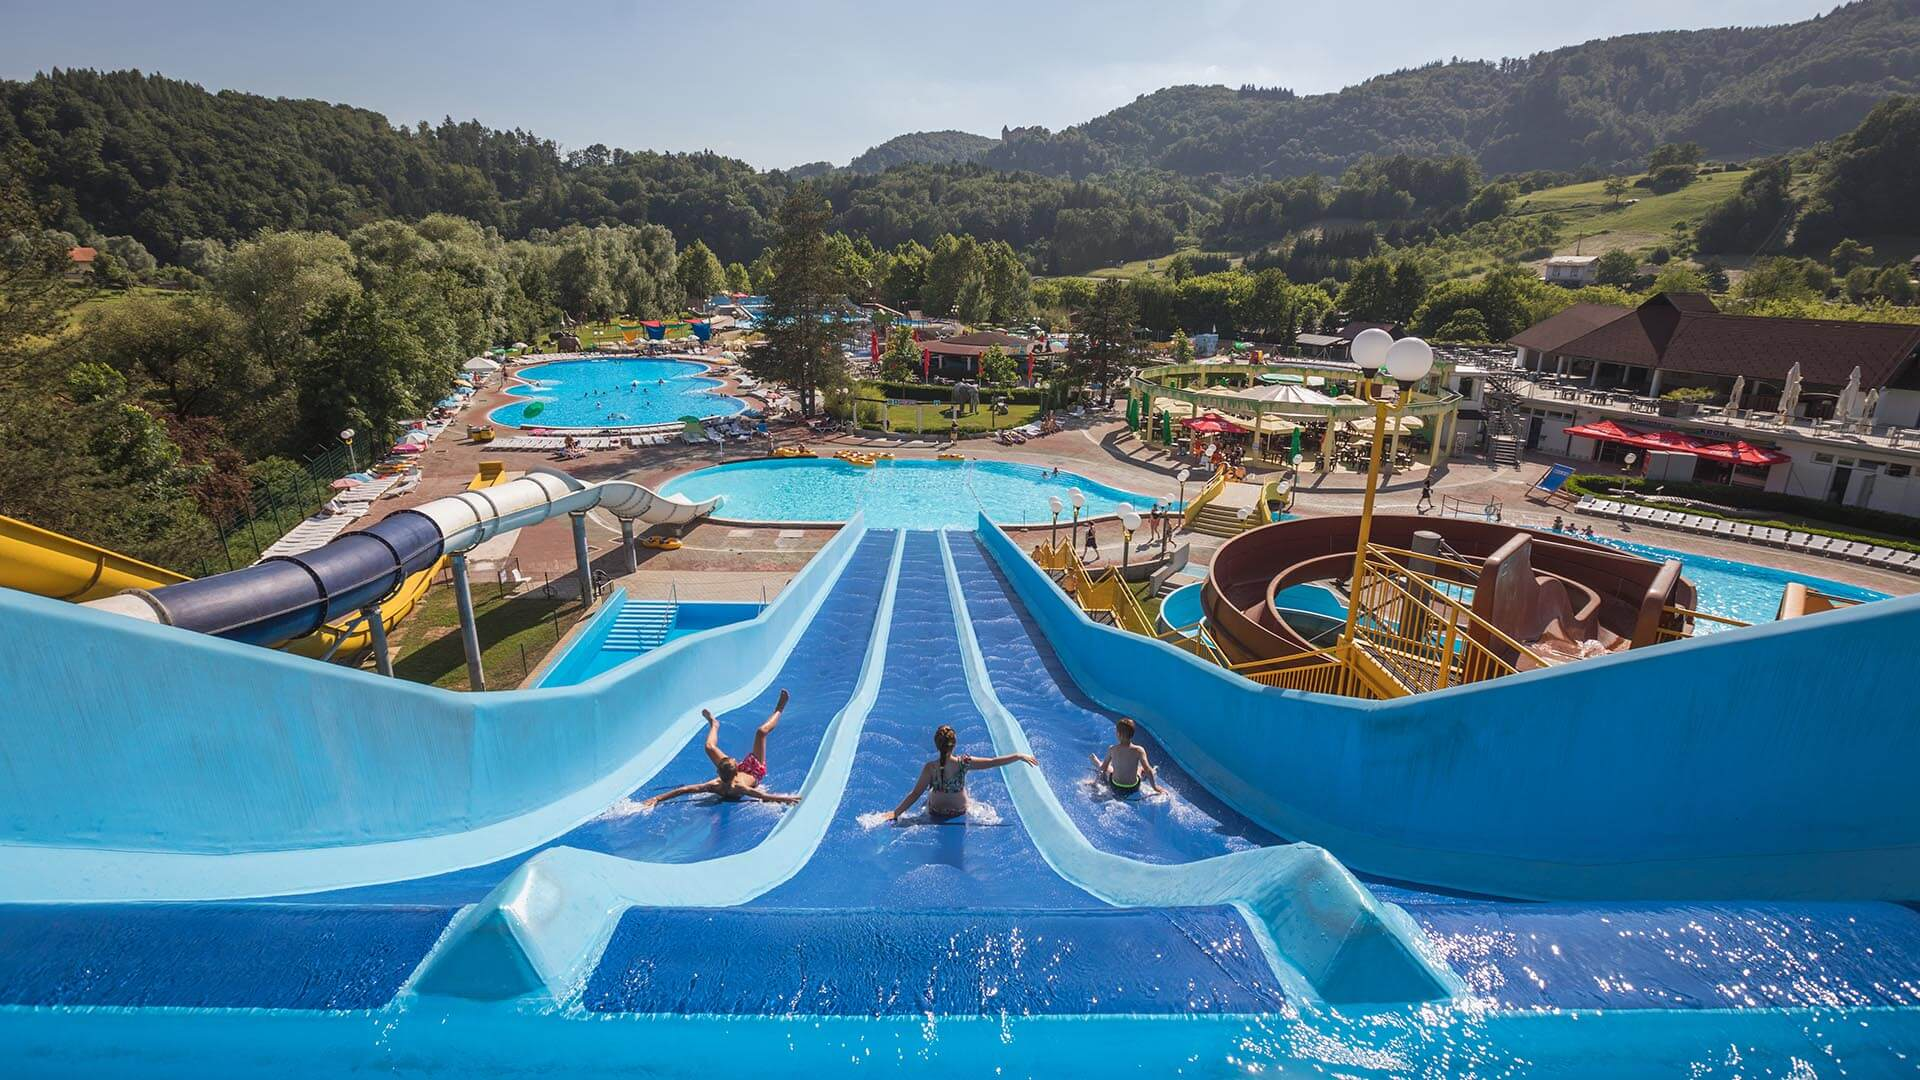 Thermal-park-Aqualuna-Terme-Olimia-241